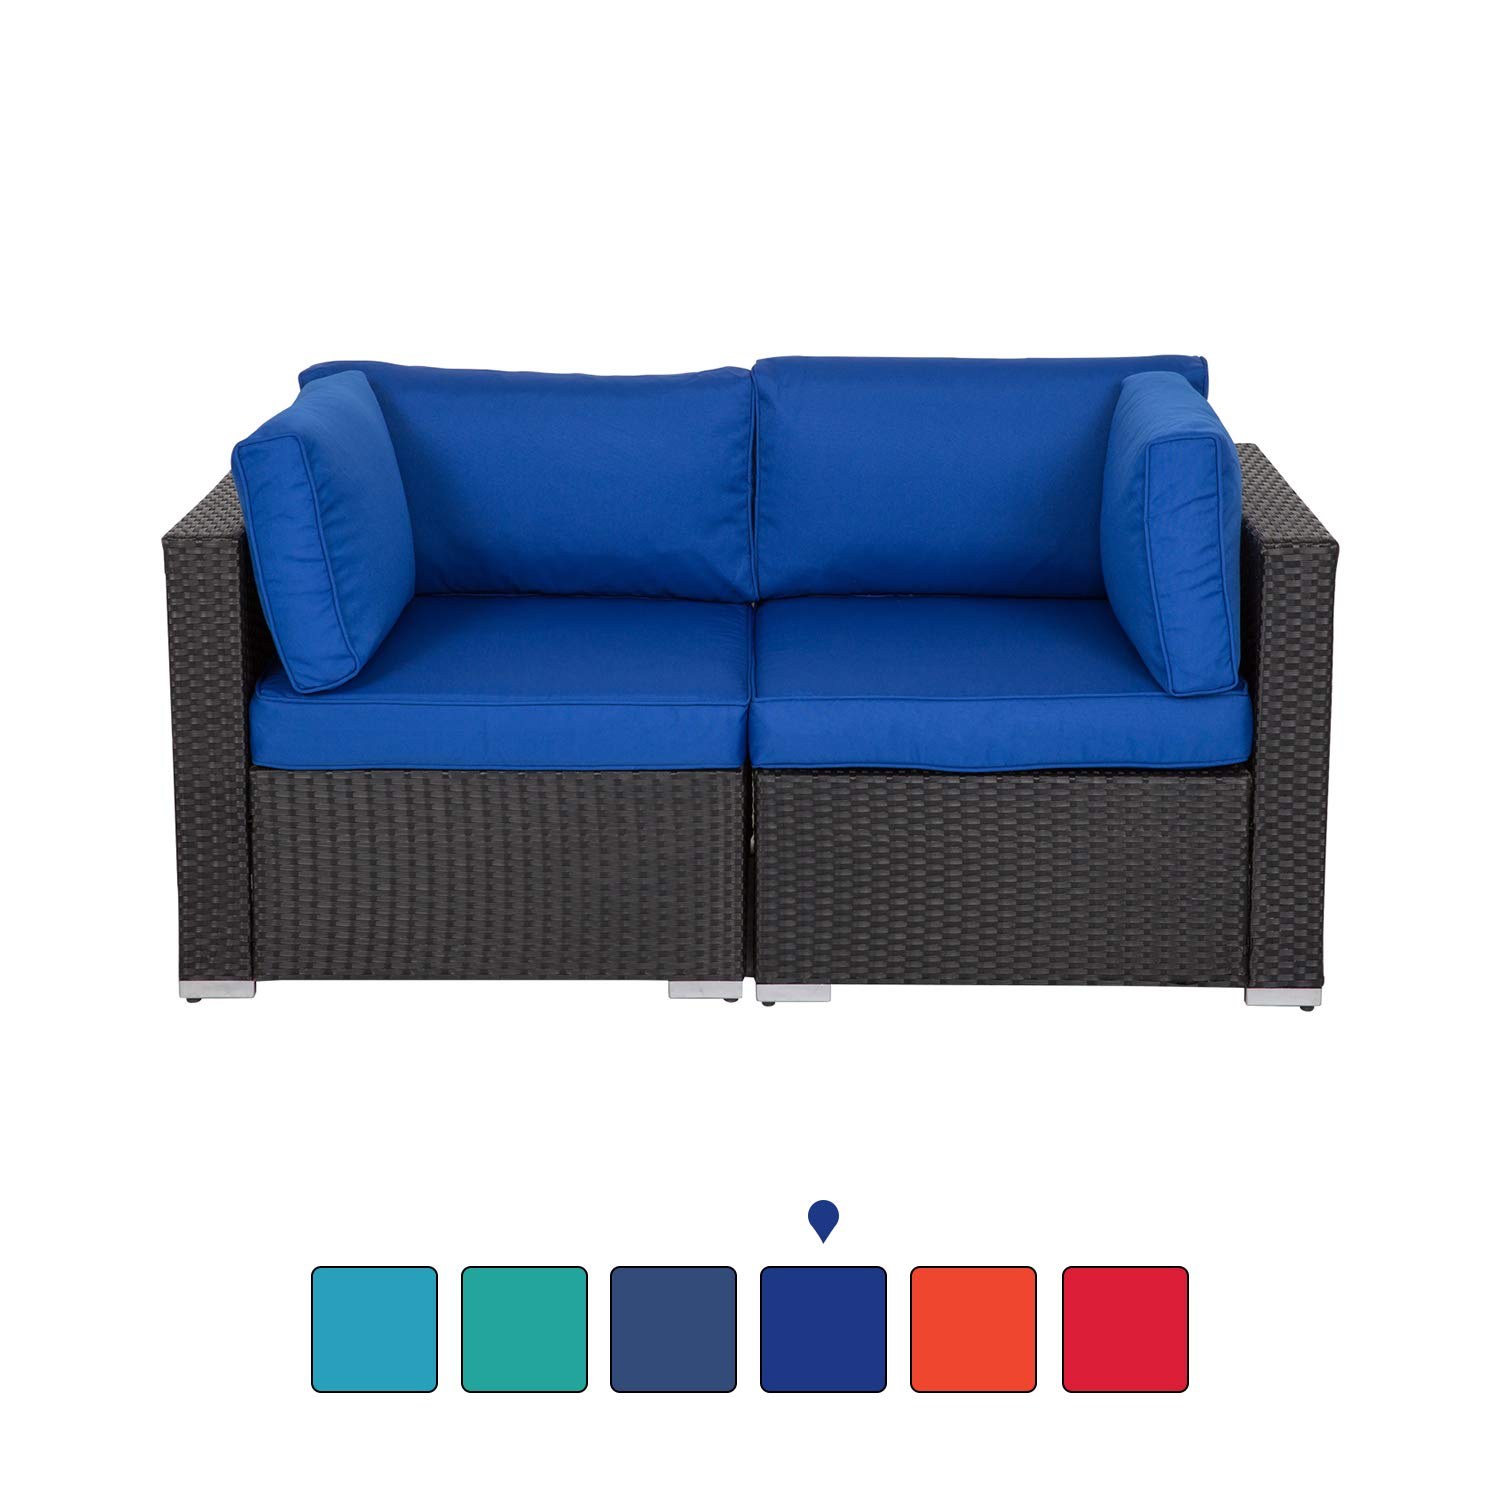 Peach Tree Wicker Loveseats Patio Sectional Corner Sofa All Weather Rattan Outdoor Thick Sofa Set by Kinsunny